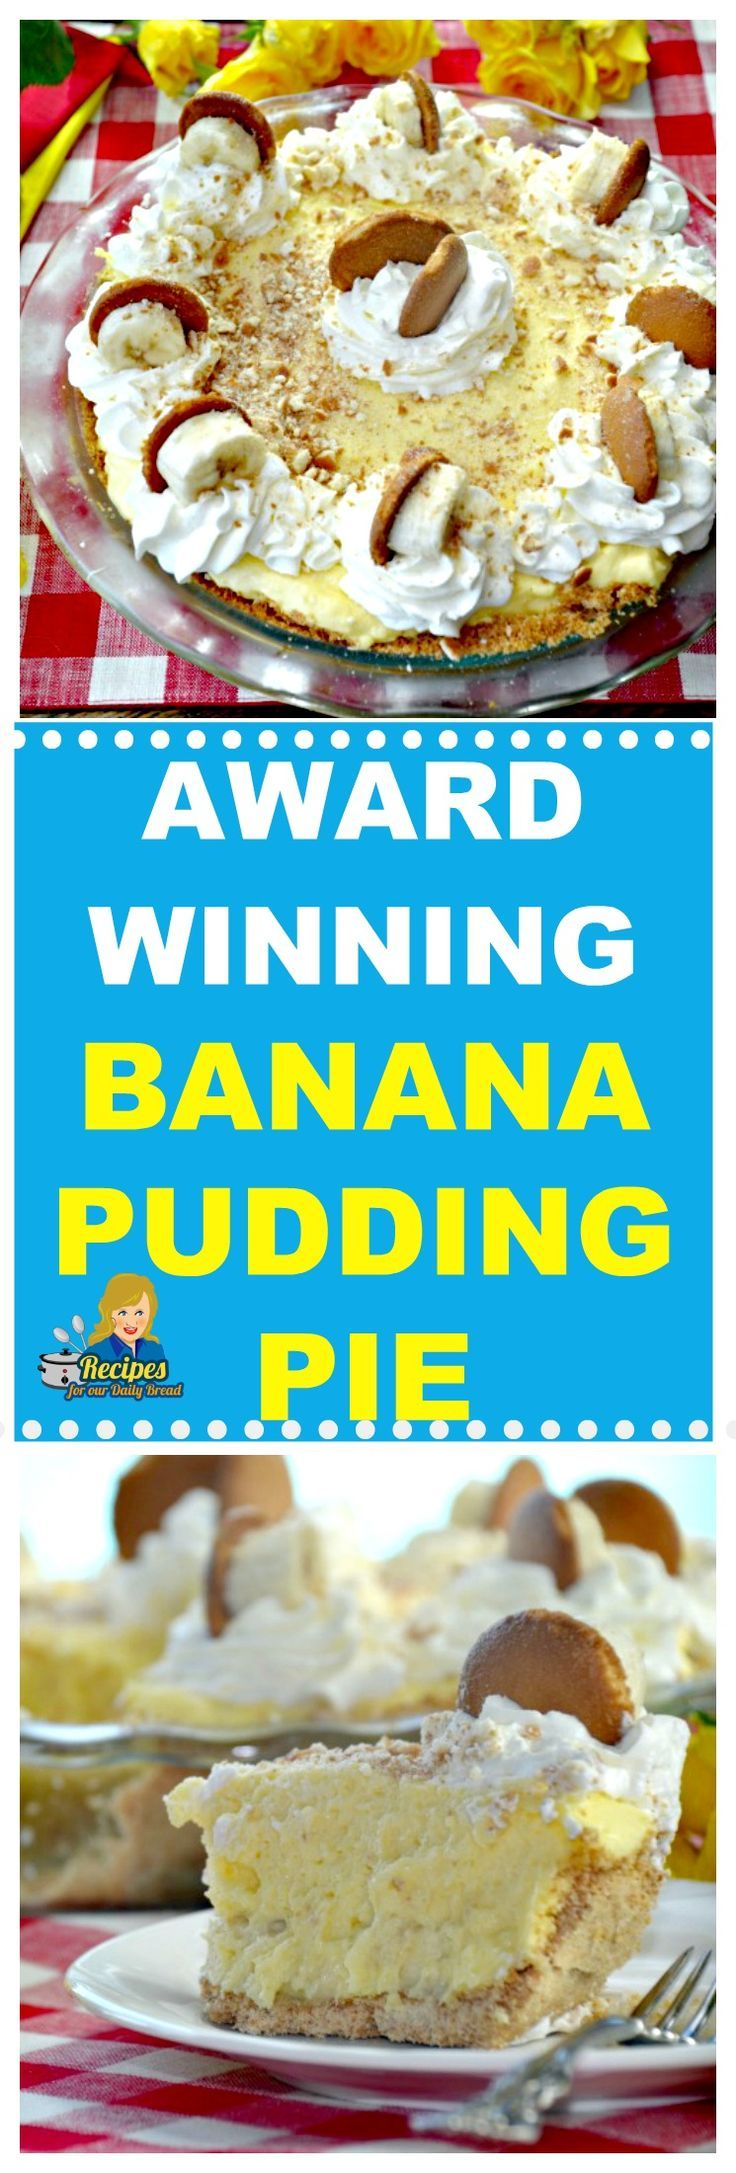 AWARD WINNING EASY NO BAKE BANANA PUDDING PIE FROM RECIPES FOR OUR DAILY BREAD BLOG This No Bake Banana Pudding Pie won first place at Root Cafe in Little Rock. You have to try this easy no-bake banana pudding pie.  #bananapudding #banana #dessert #dessert #pie #pies #recipe #recipesforourdailybread